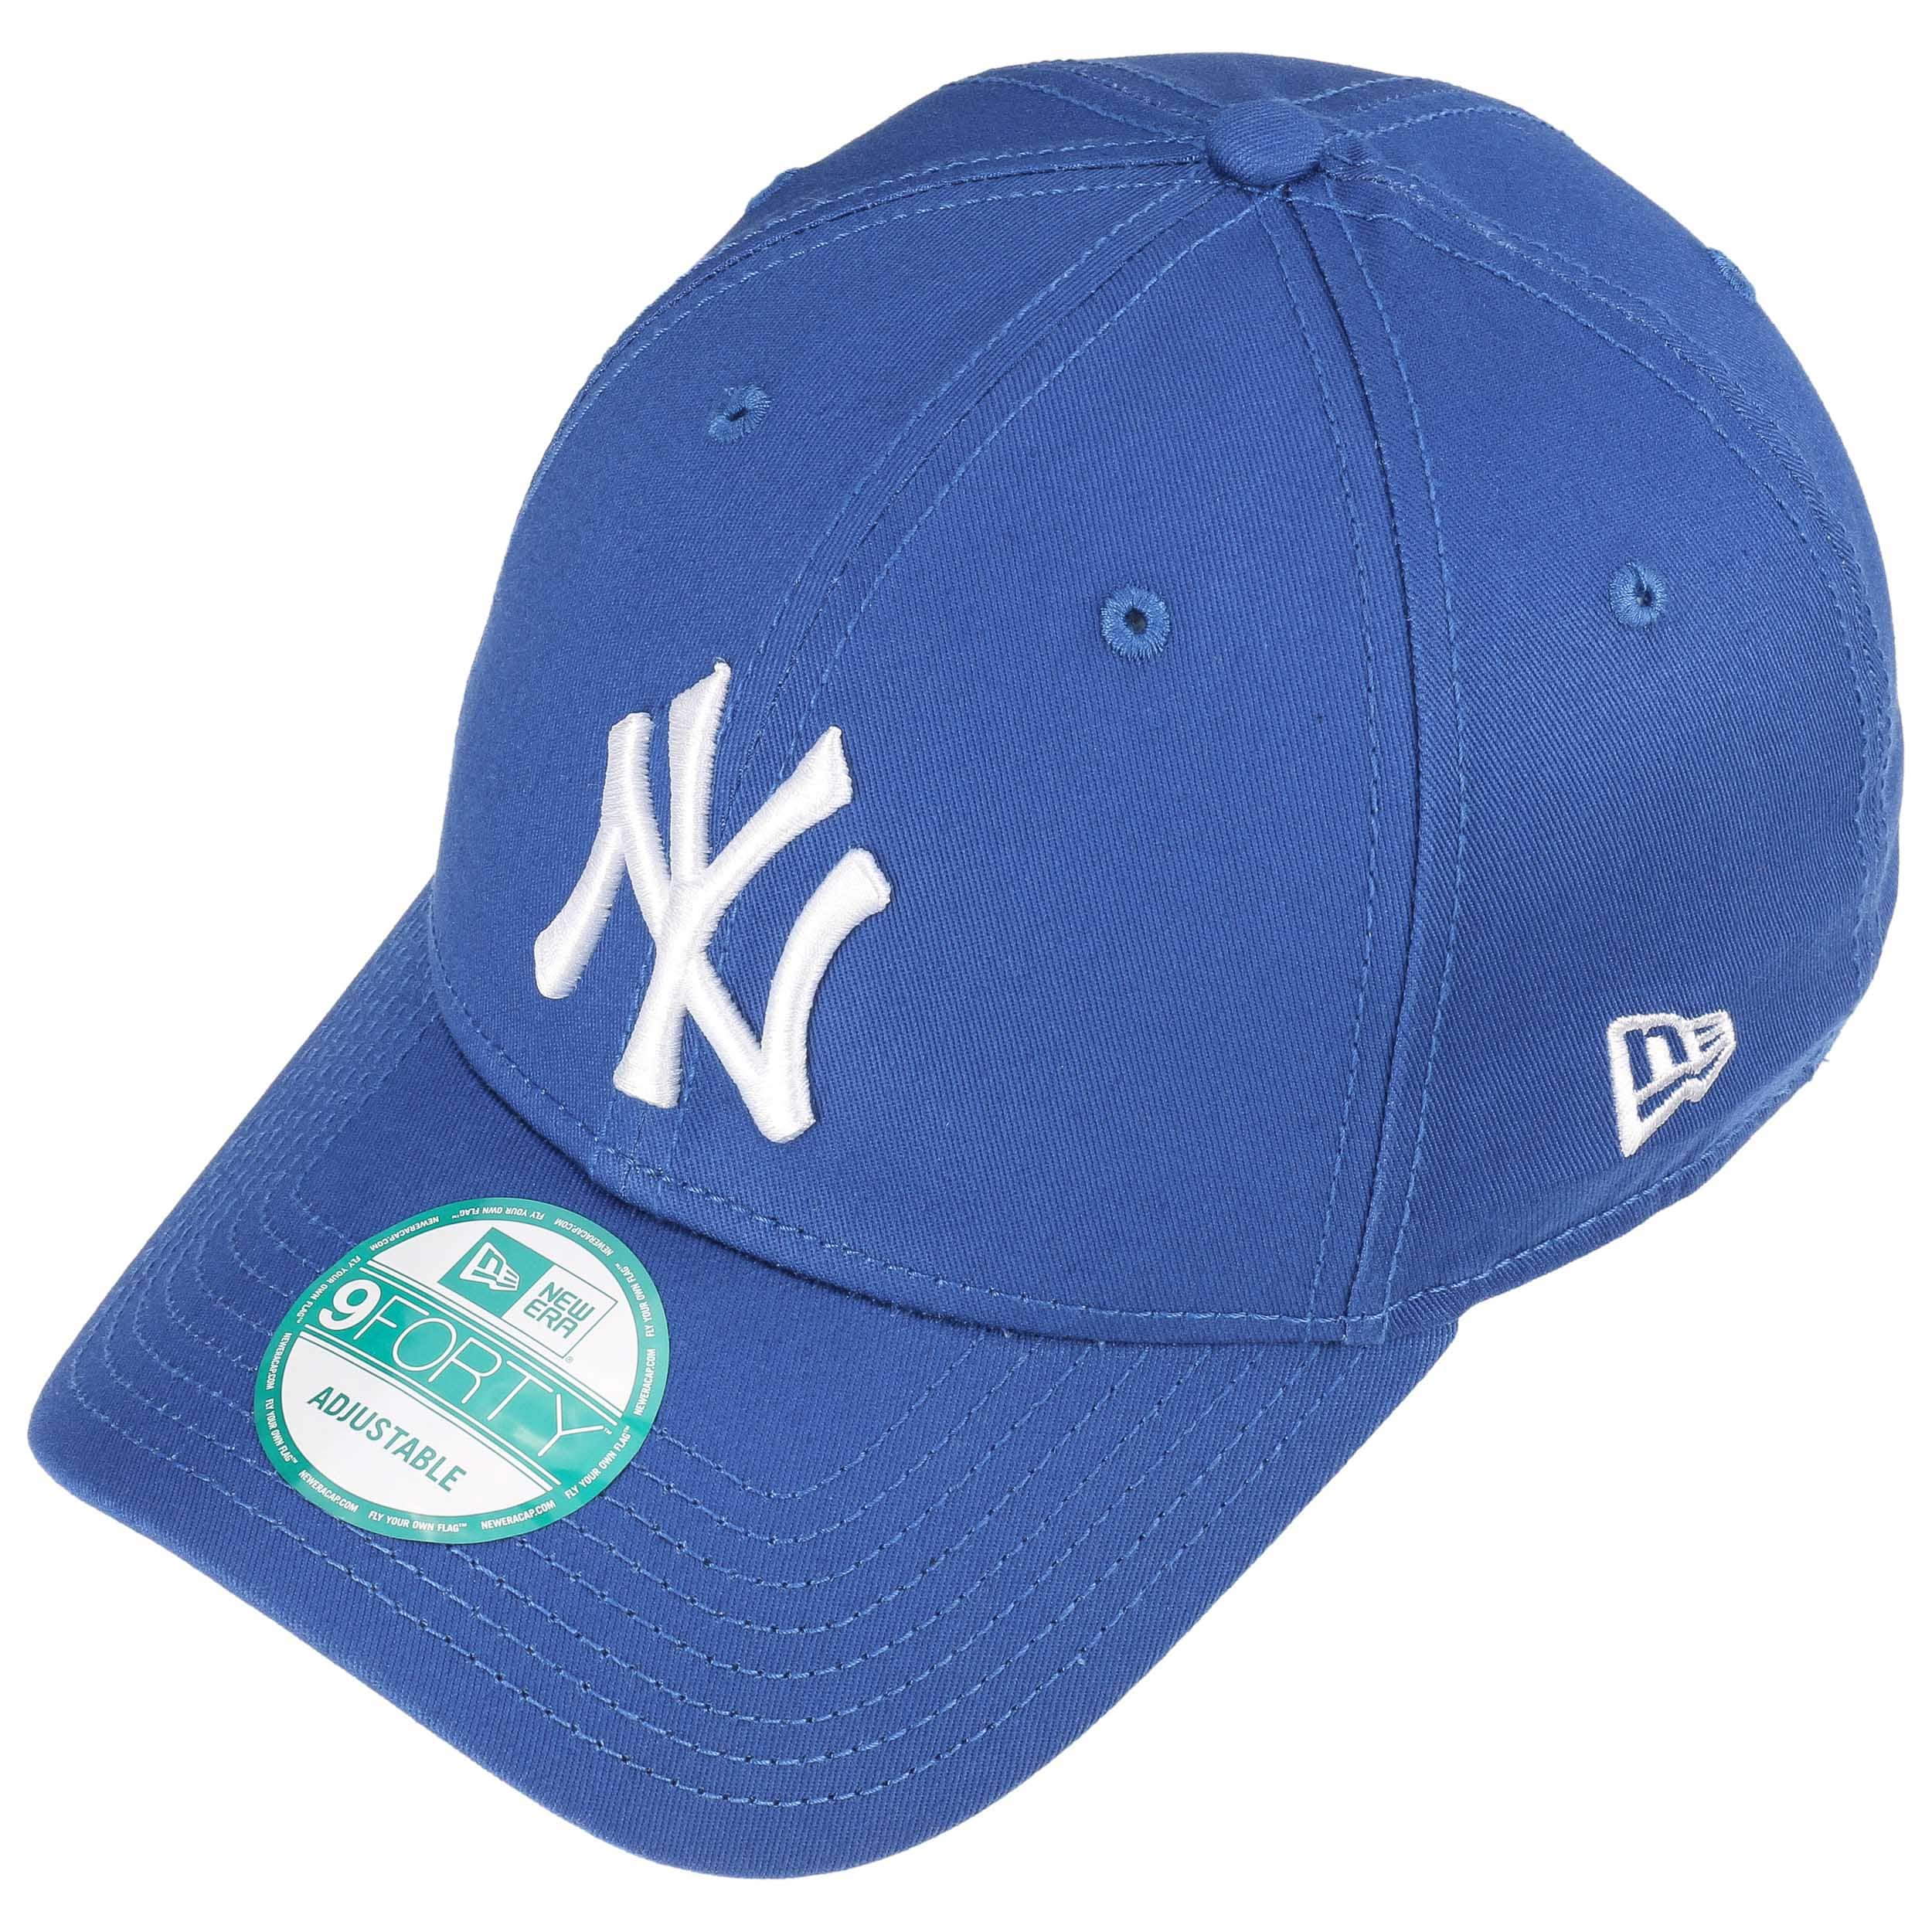 c5856a72681 ... 9Forty League Essential NY Cap by New Era - light blue 1 ...